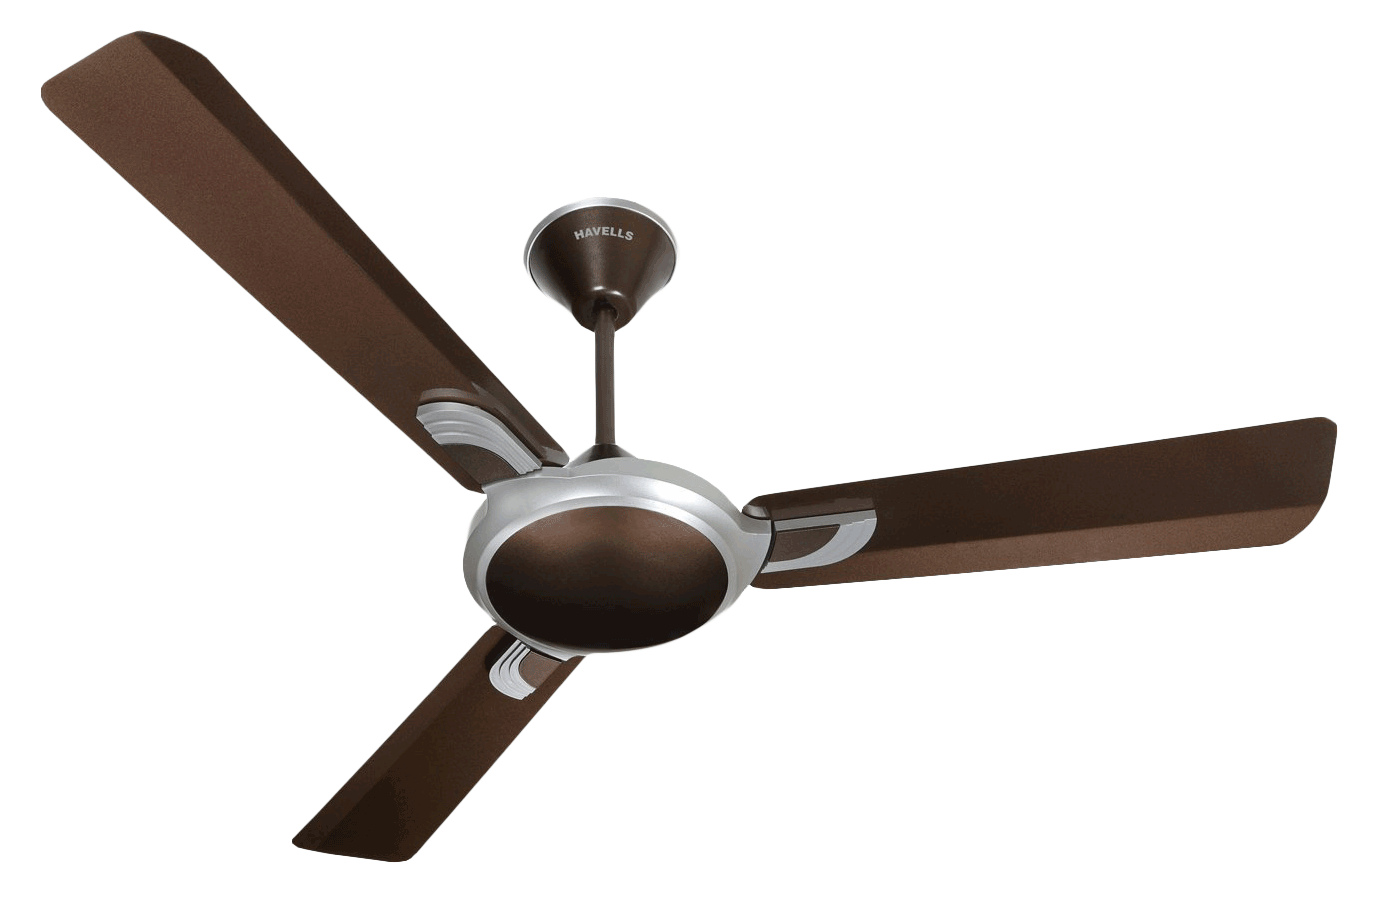 Does ceiling height matter?  Yes! Ceiling fans are only appropriate in rooms with ceilings at least 8 feet high. Fans work best when the blades are 7 to 9 feet above the floor and 10 to 12 inches below the ceiling. Fans should be installed so their blades are no closer than 8 inches from the ceiling and 18 inches from the walls.